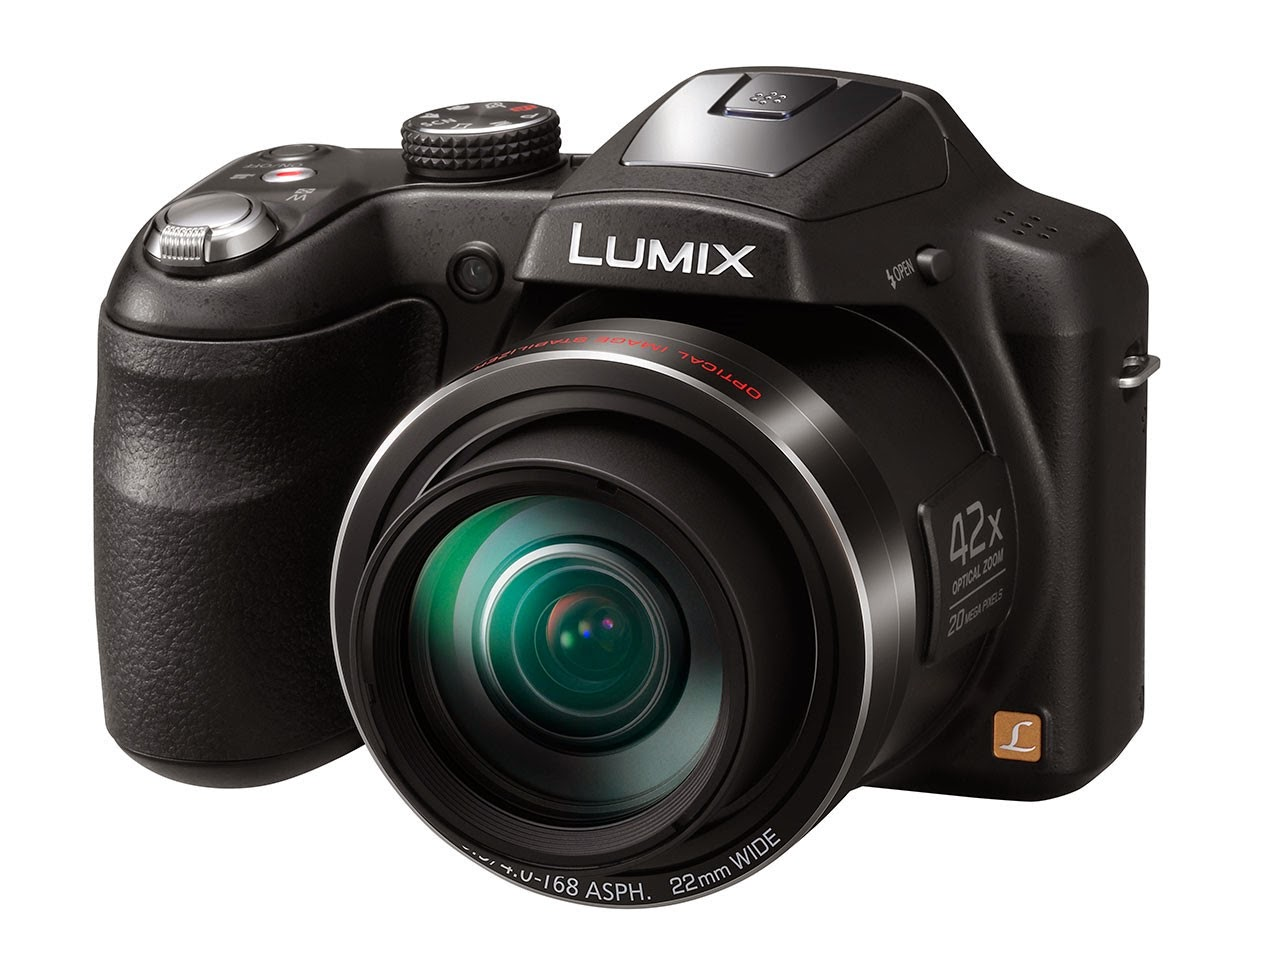 Panasonic Lumix DMC-LZ40, Sony DSC-HX400V, Sony Cybershot DSC-H400, prosumer camera, bridge camera, Full HD video, superzoom camera,